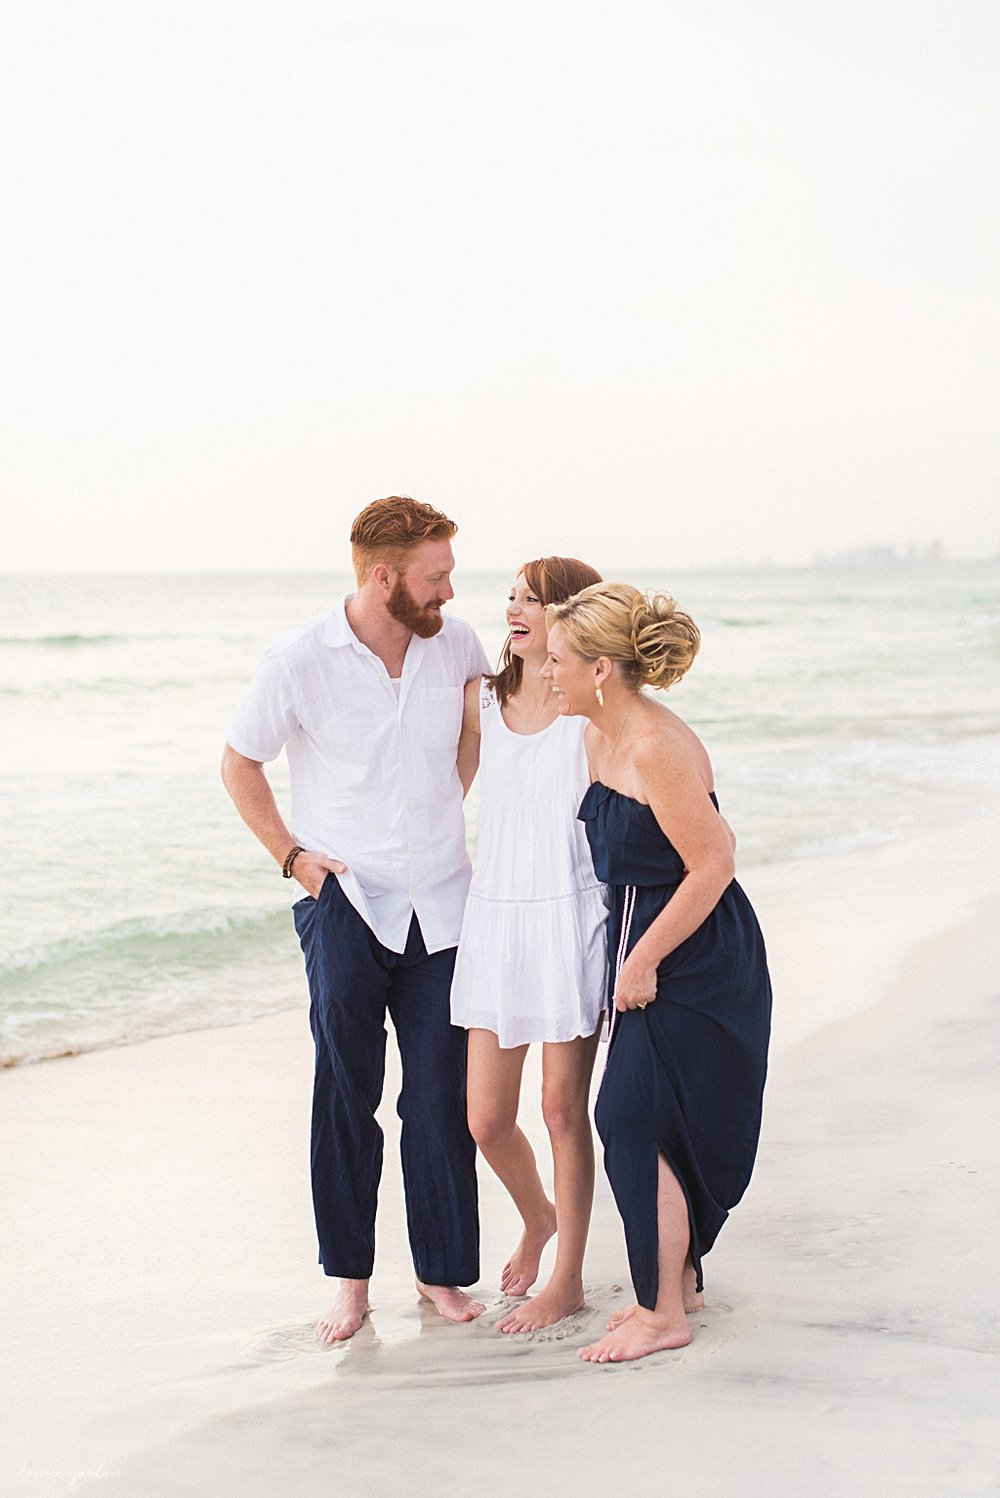 panama-city-beach-30a-wedding-photographer-family-destination_0531